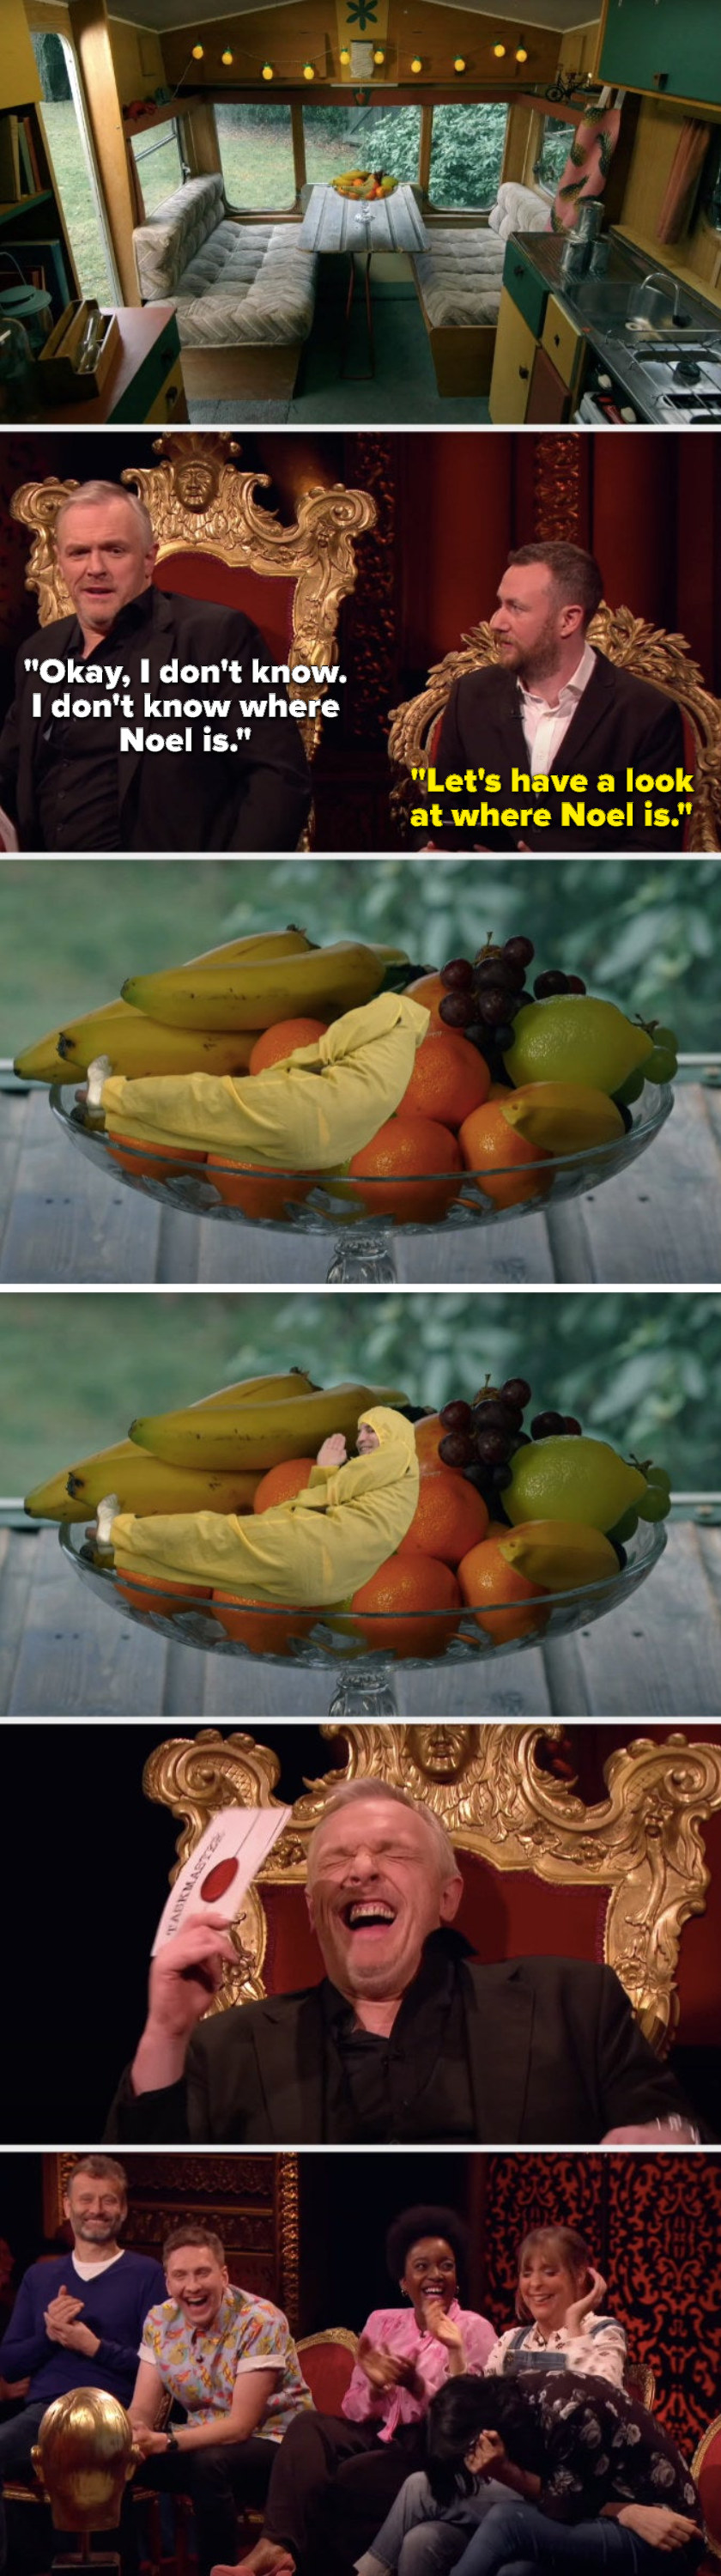 """A caravan with no clear Noel, Greg says, """"Okay, I don't know, I don't know where Noel is,"""" Alex says, """"Let's have a look at where Noel is"""" and we see Noel Fielding has been photoshoped into a fruit bowl and everyone laughs"""